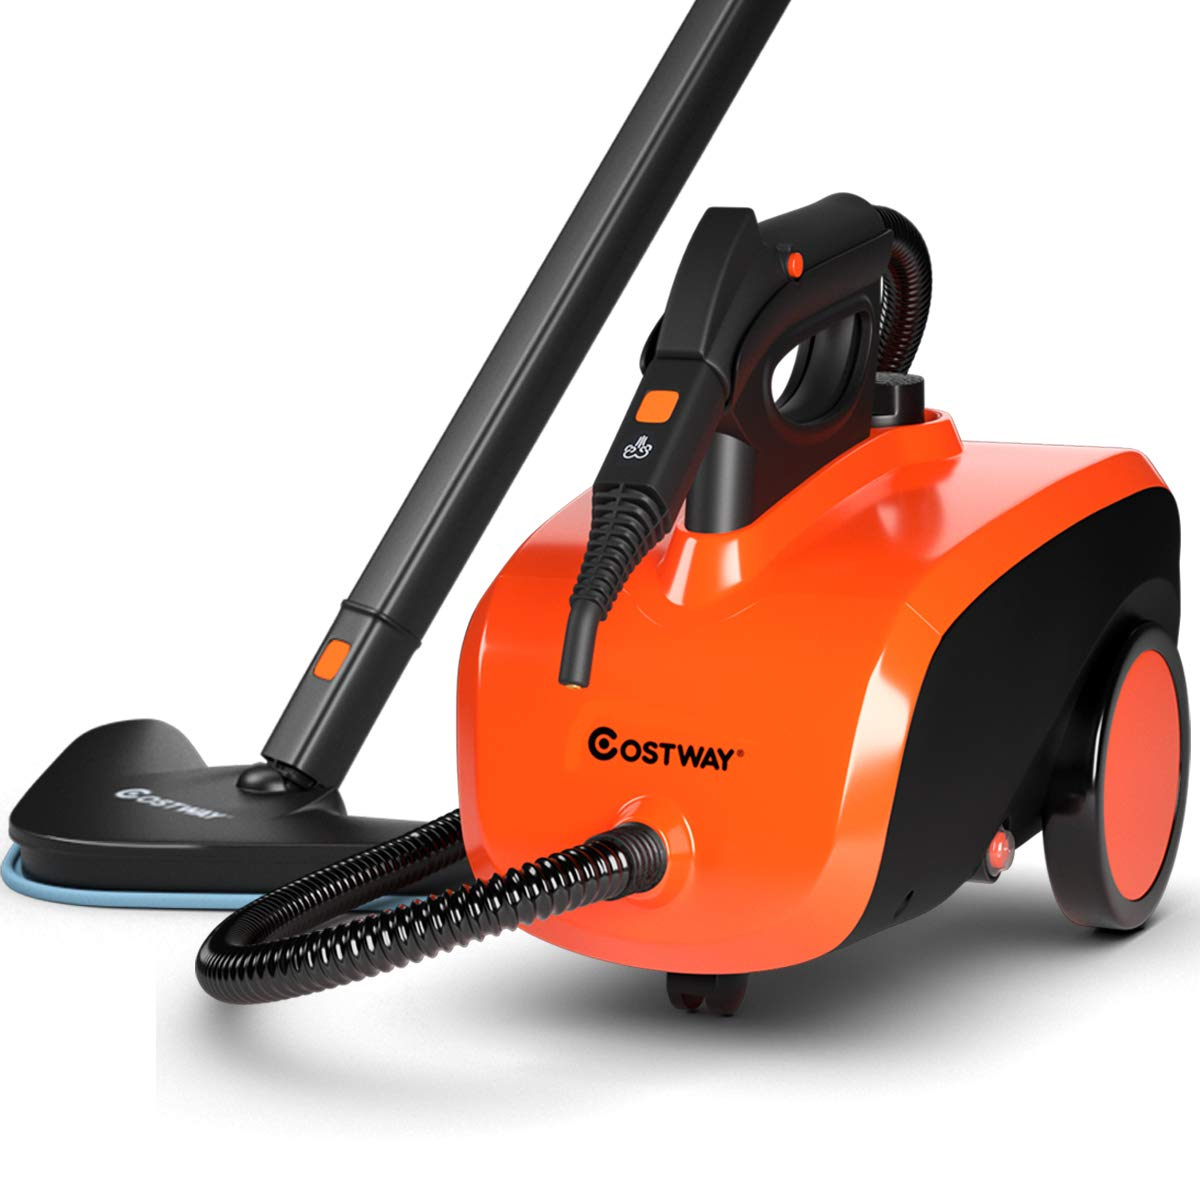 COSTWAY Multipurpose Steam Cleaner with 18 Accessories, Heavy Duty Household Steamer Chemical-Free Cleaning, 1.5L Dual-Tank Rolling Cleaning Machine for Carpet, Floors, Windows and Cars by COSTWAY